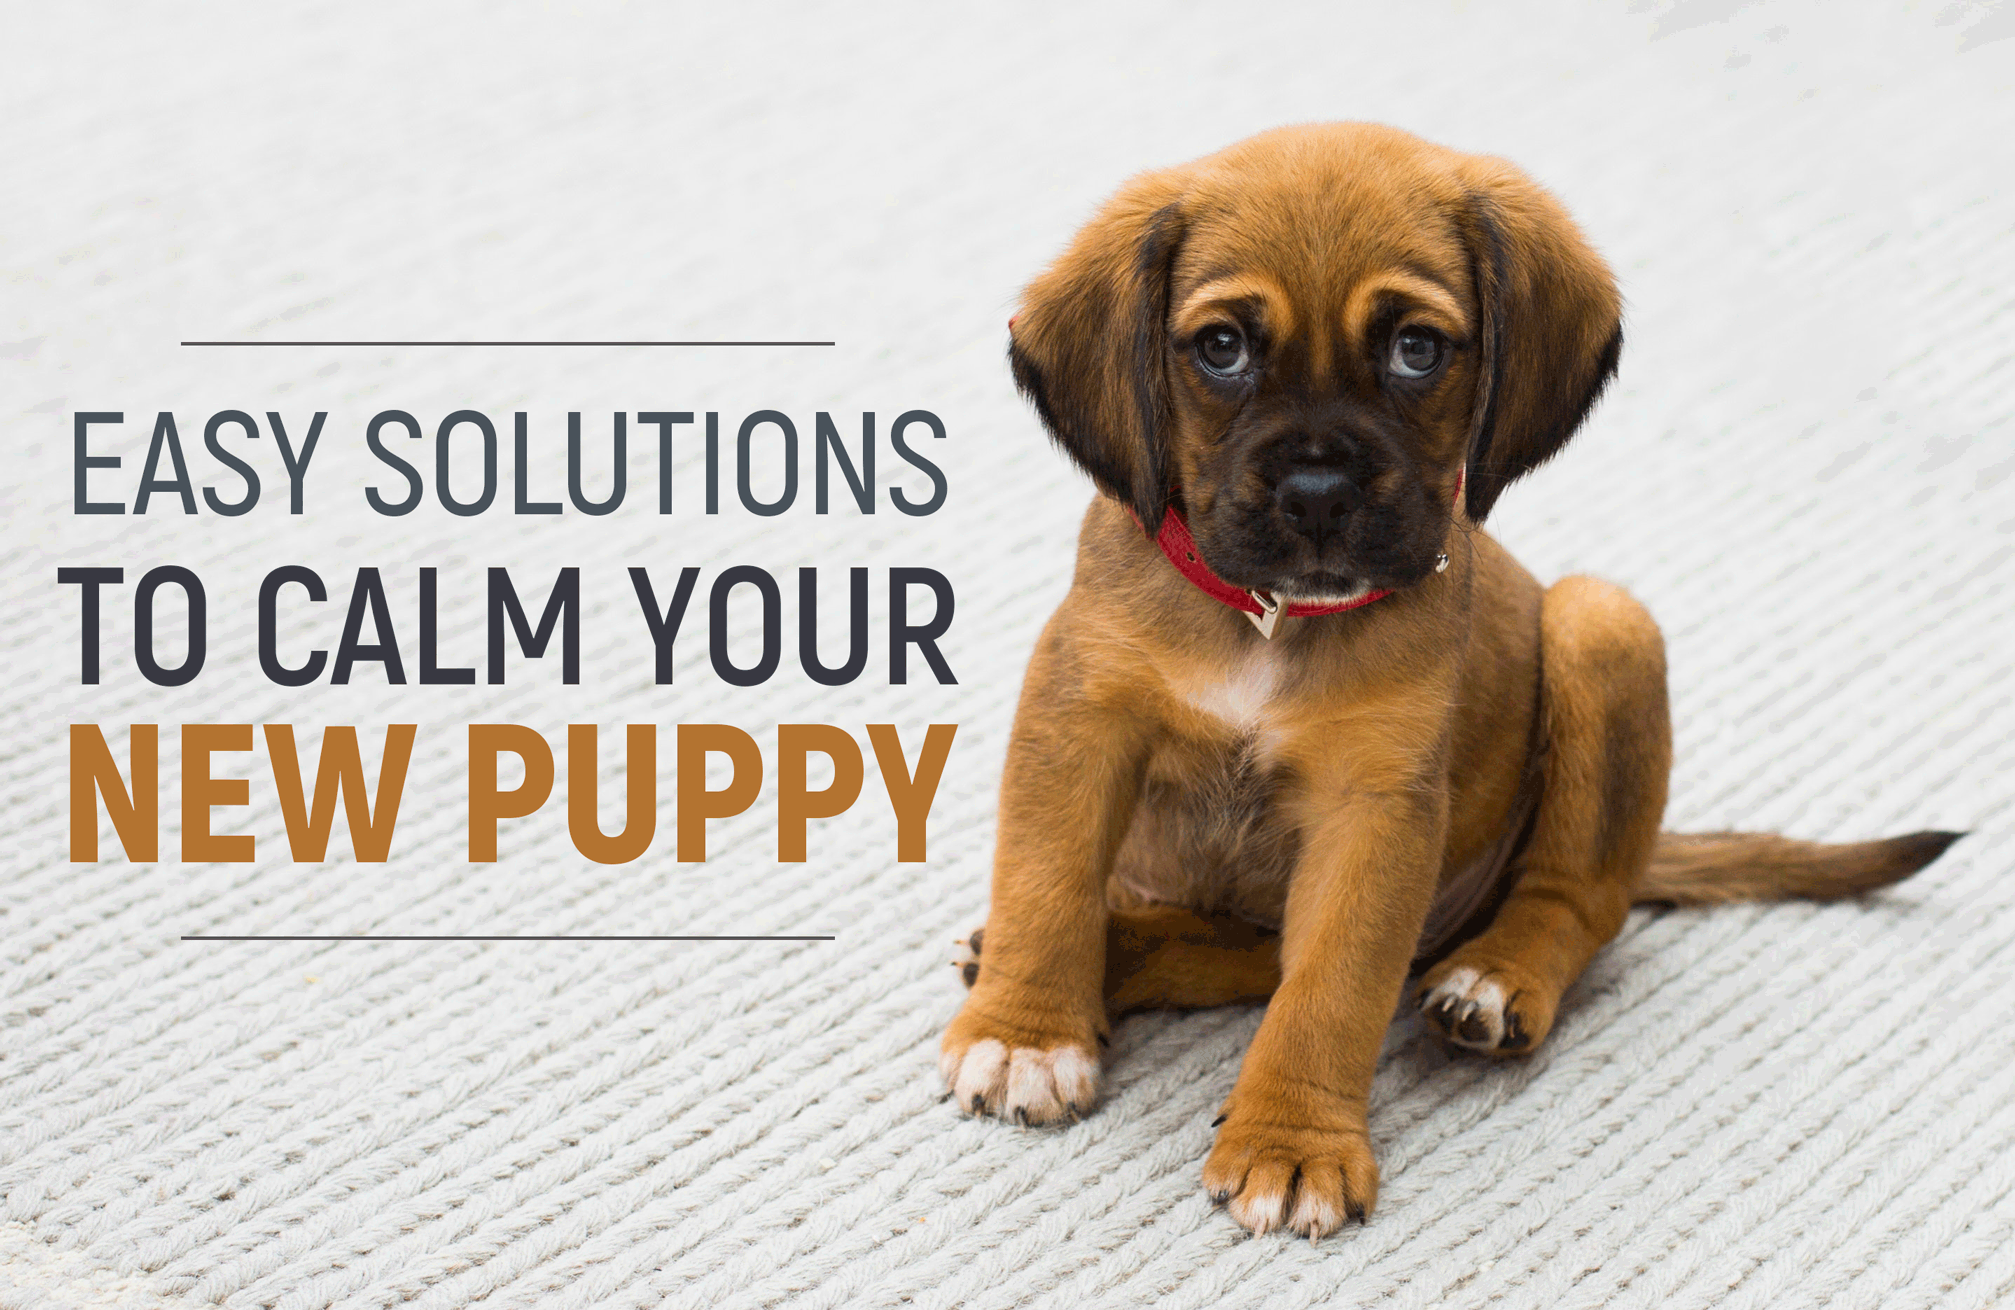 5 Easy Solutions to Calm Your New Puppy